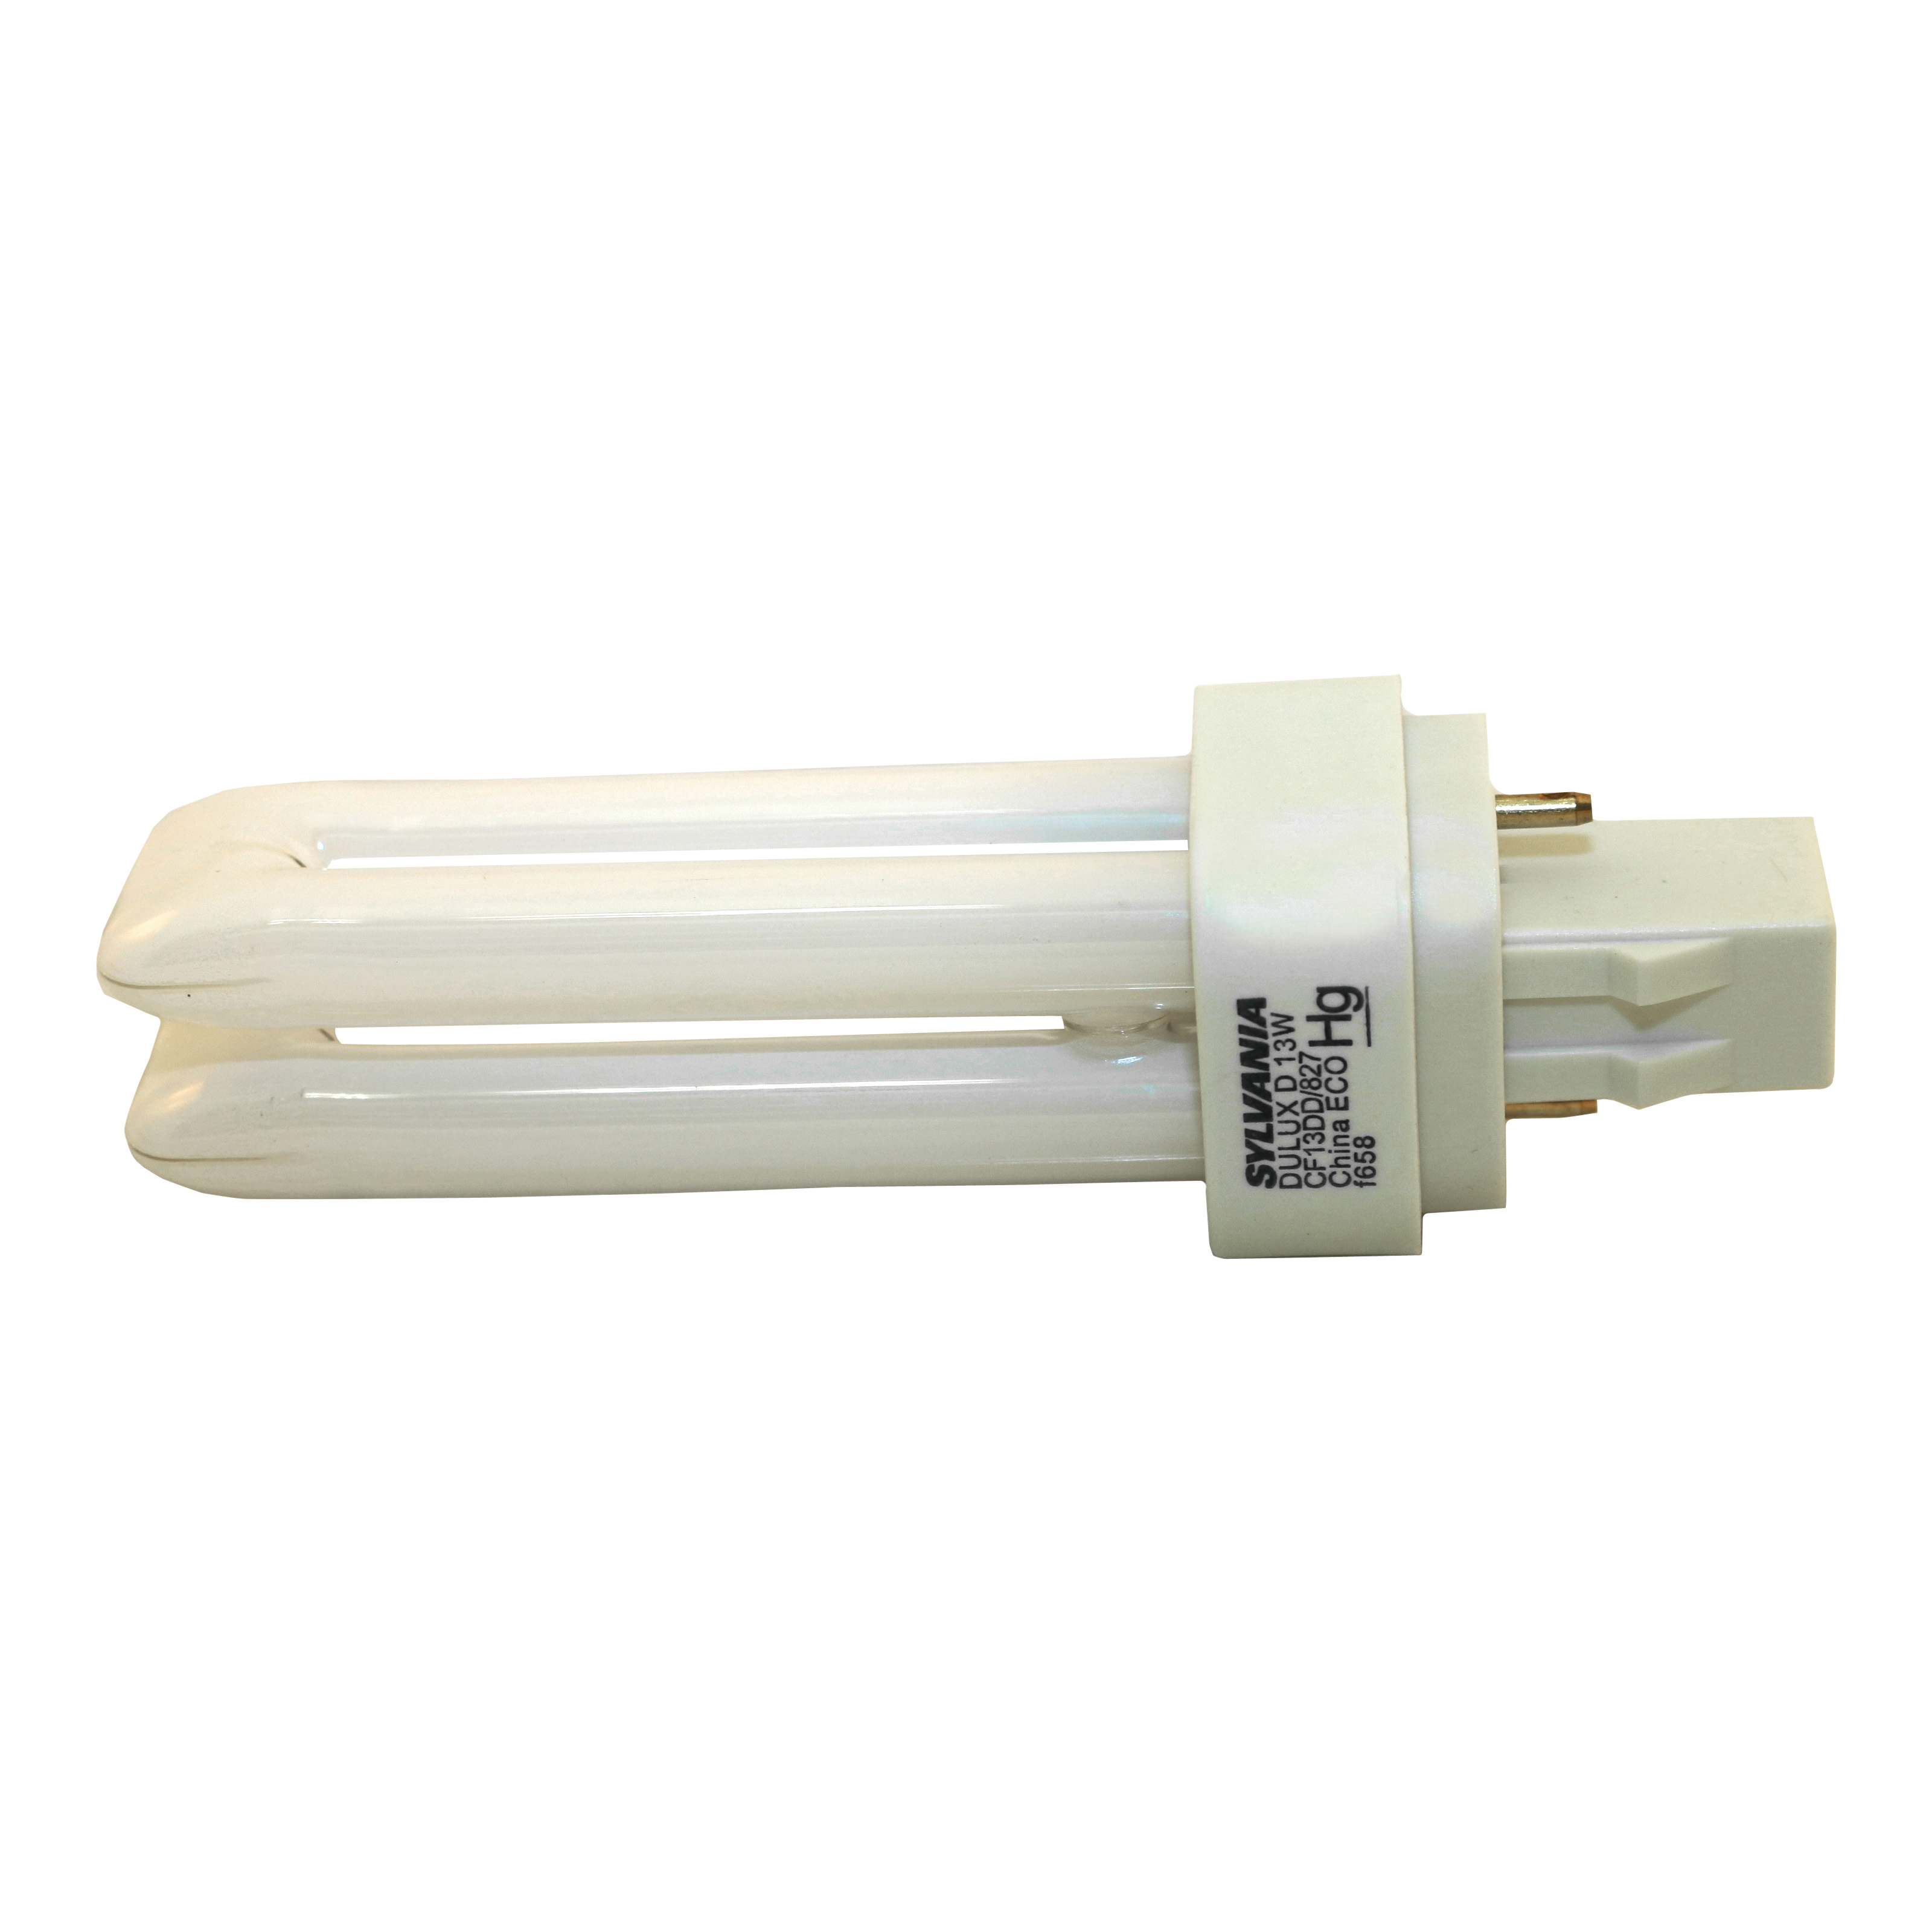 Picture of Sylvania 20480 Compact Fluorescent Bulb, 13 W, T4 Lamp, GX23 Lamp Base, 671 Lumens, 2700 K Color Temp